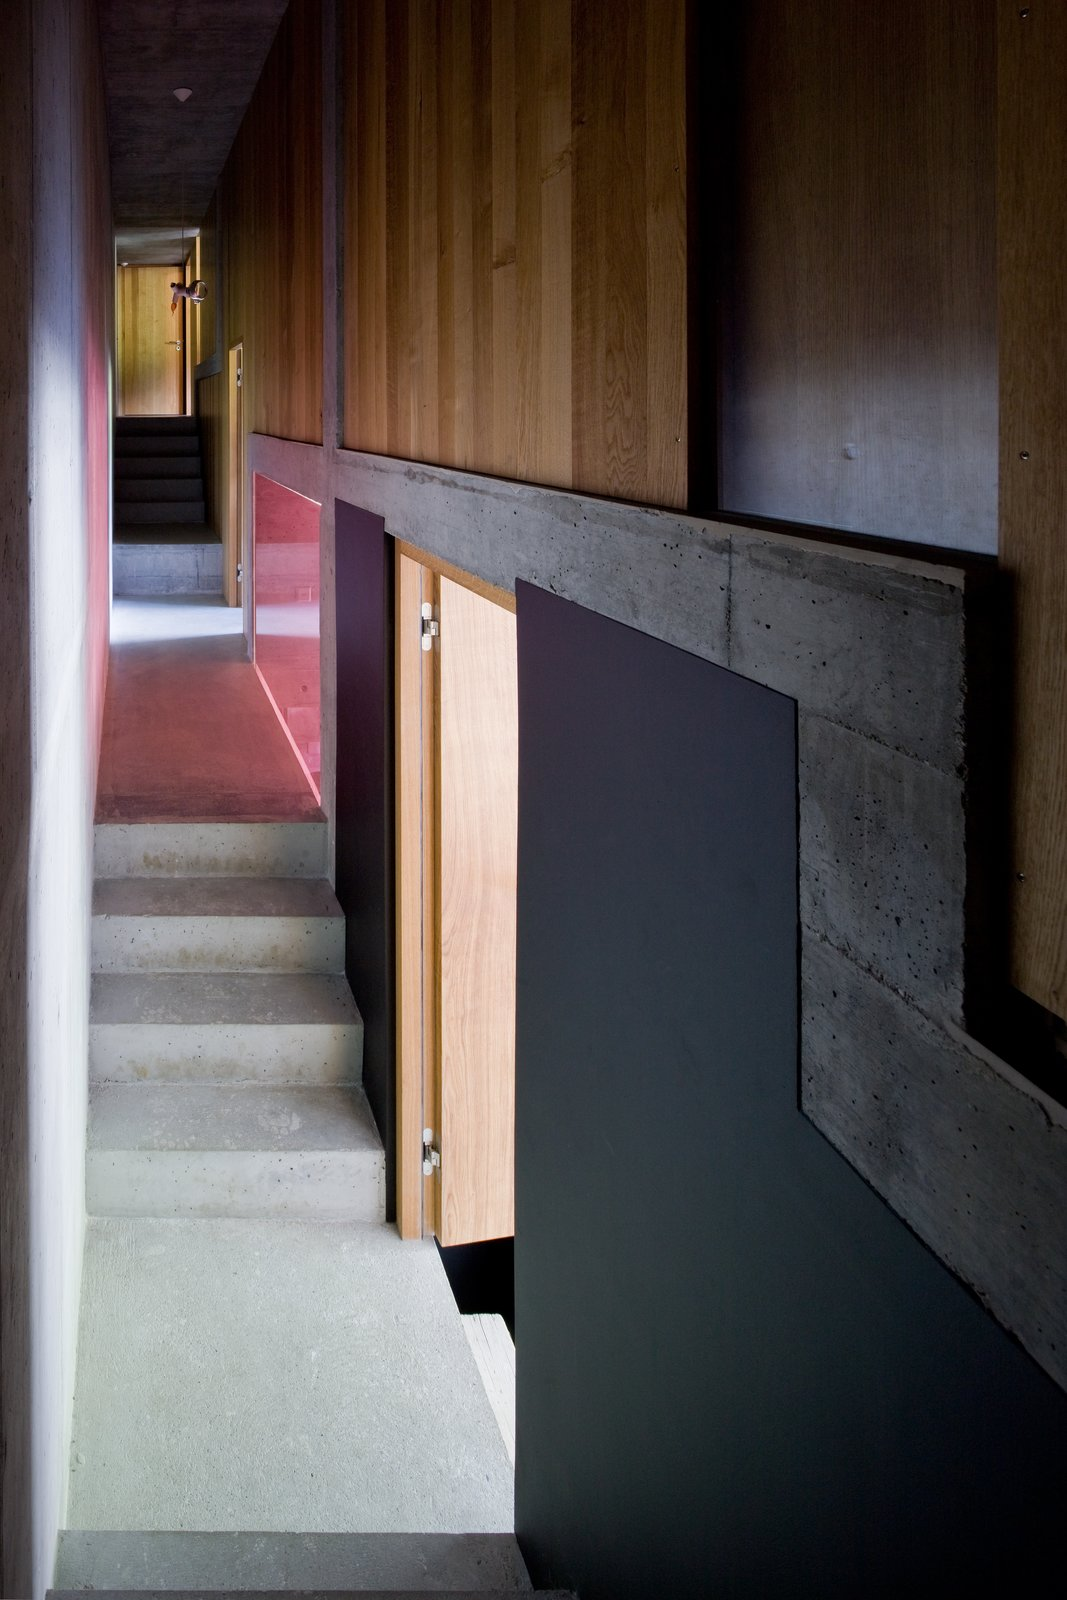 Hallway and Concrete Floor  Photo 11 of 13 in Stay in a Swiss Vacation Home That's Literally Inside a Mountain